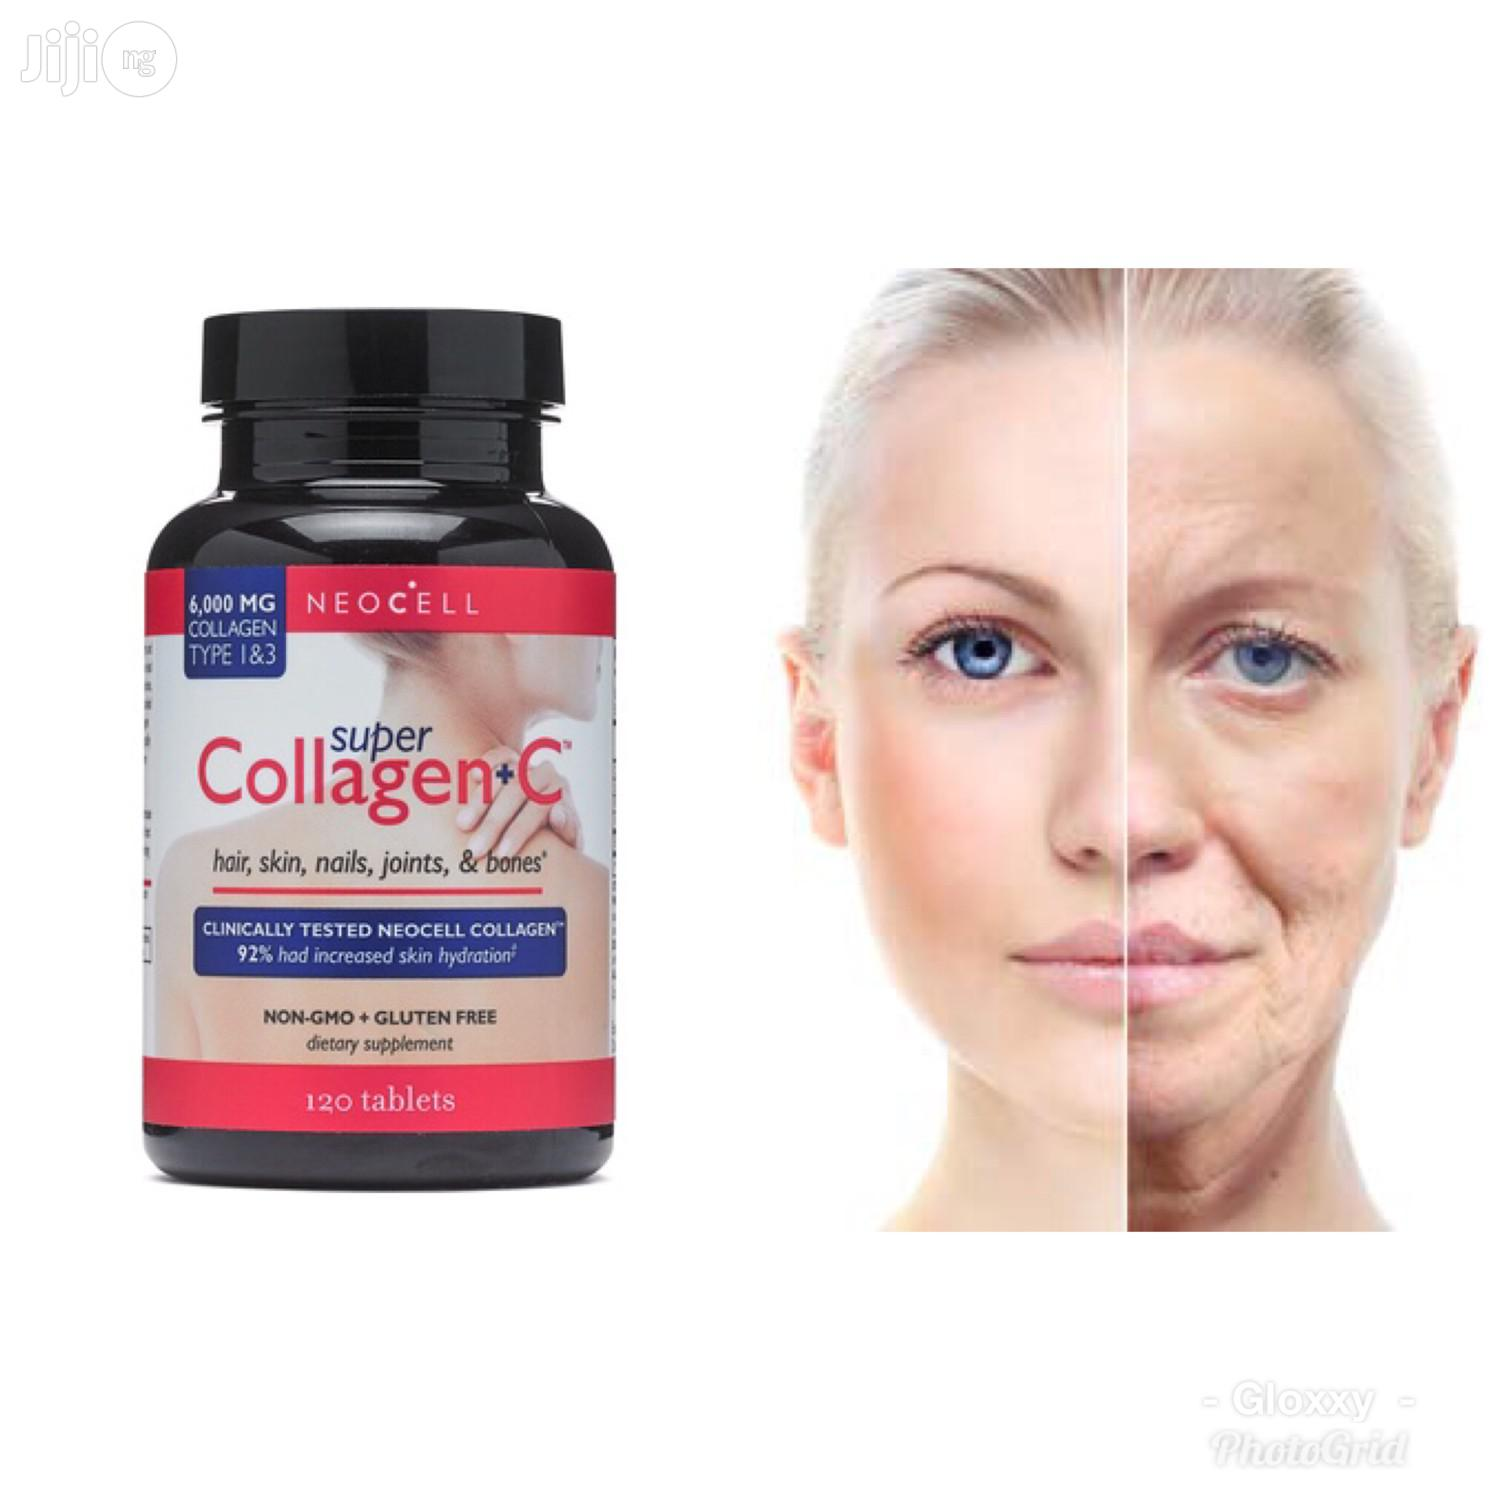 Neocell Super Collagen +C Type 1 3